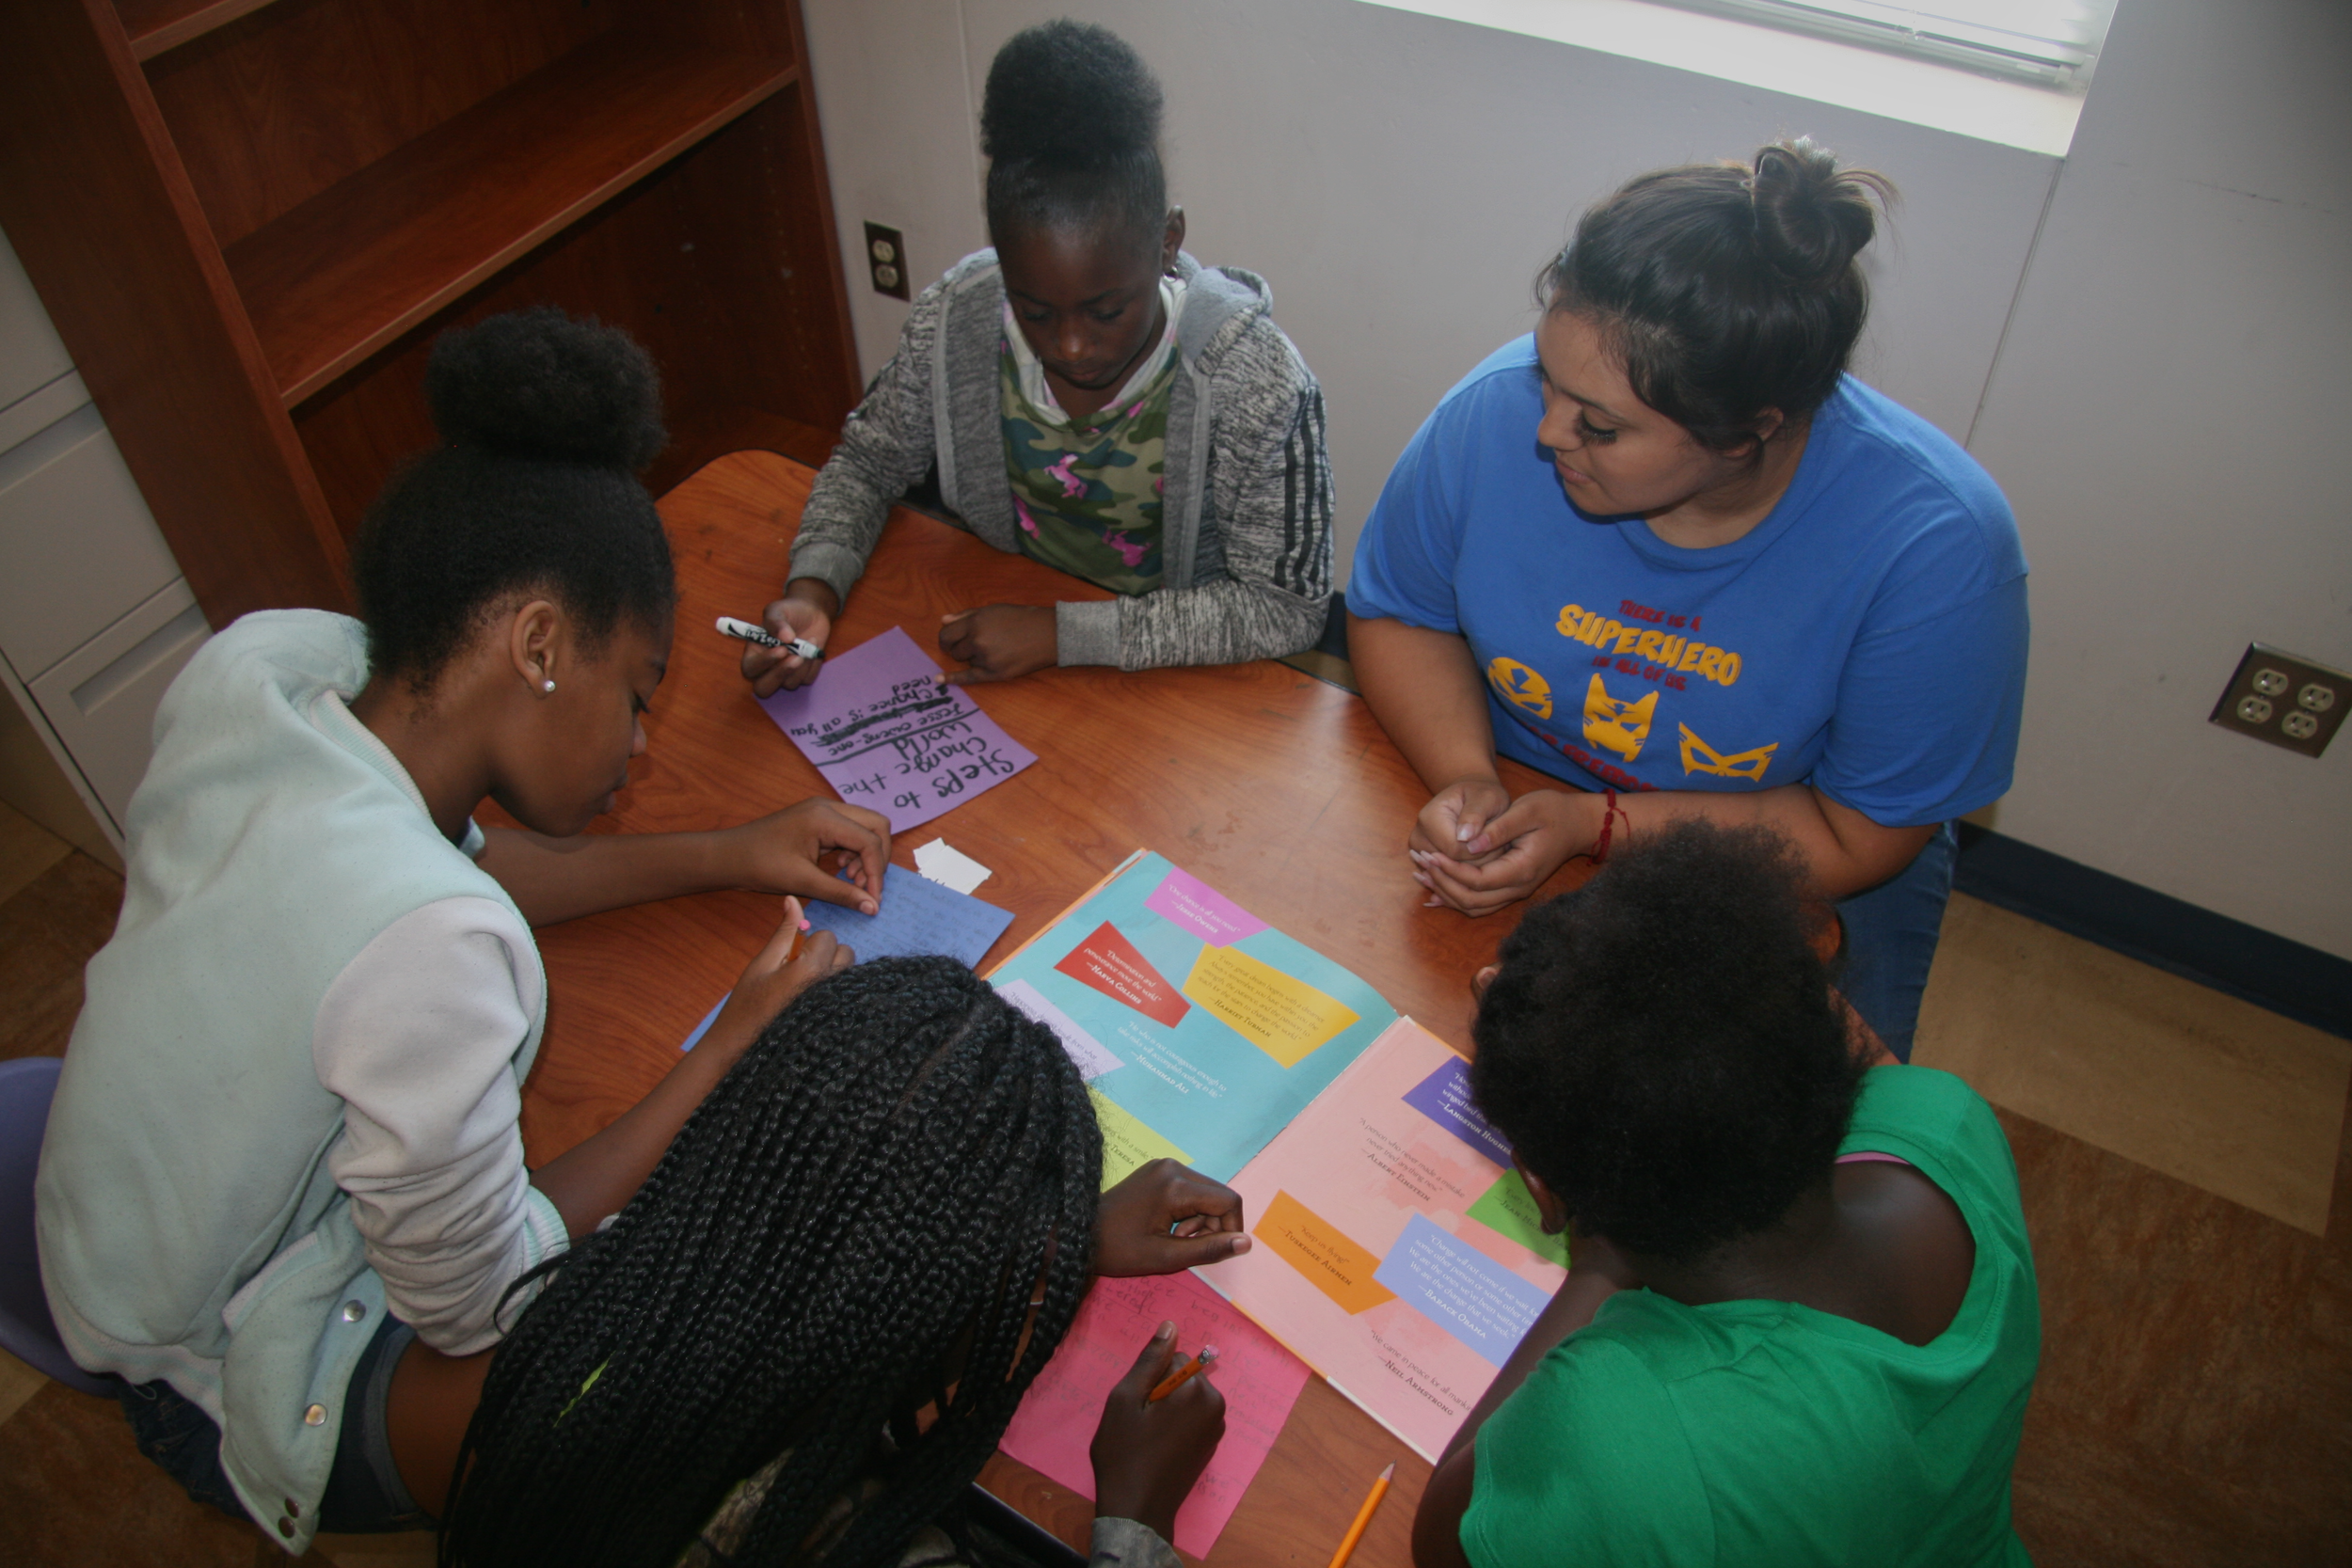 Developing student leaders at Freedom School - August 1, 2019